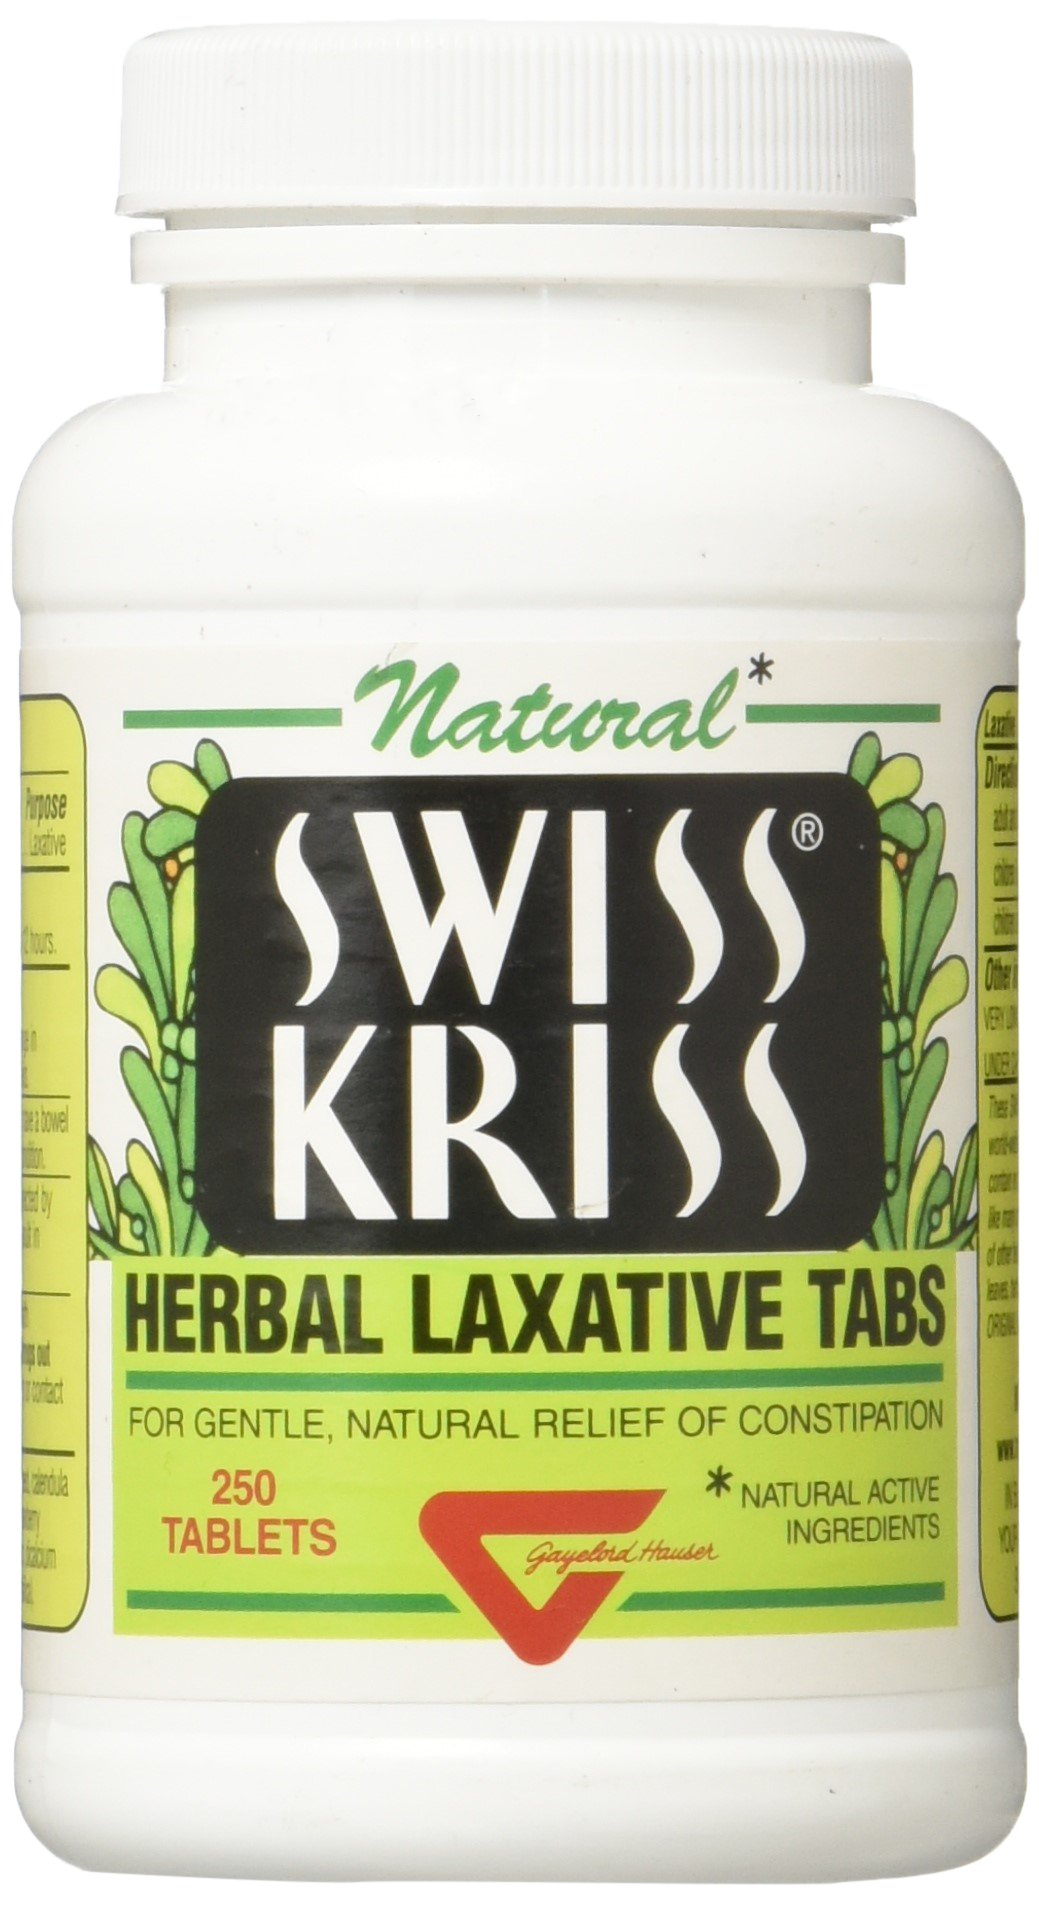 Swiss Kriss Herbal Laxative 250 Tablets 4-Pack